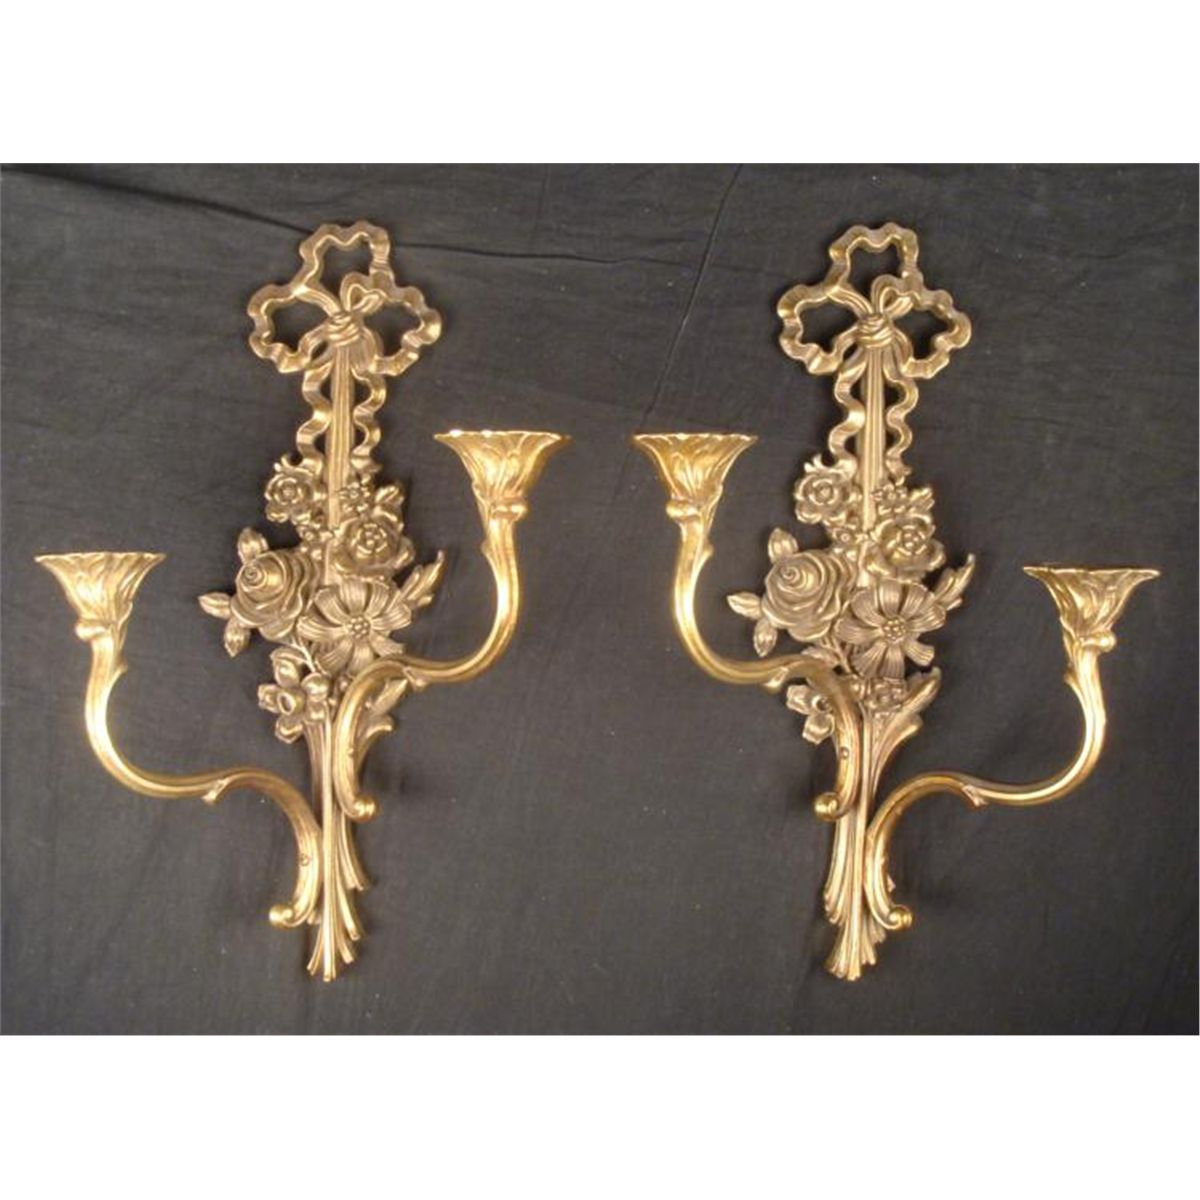 wall mounted candle holders 2 Candle Holders   Wall Mounted Syroco Wood Art Nouveau wall mounted candle holders